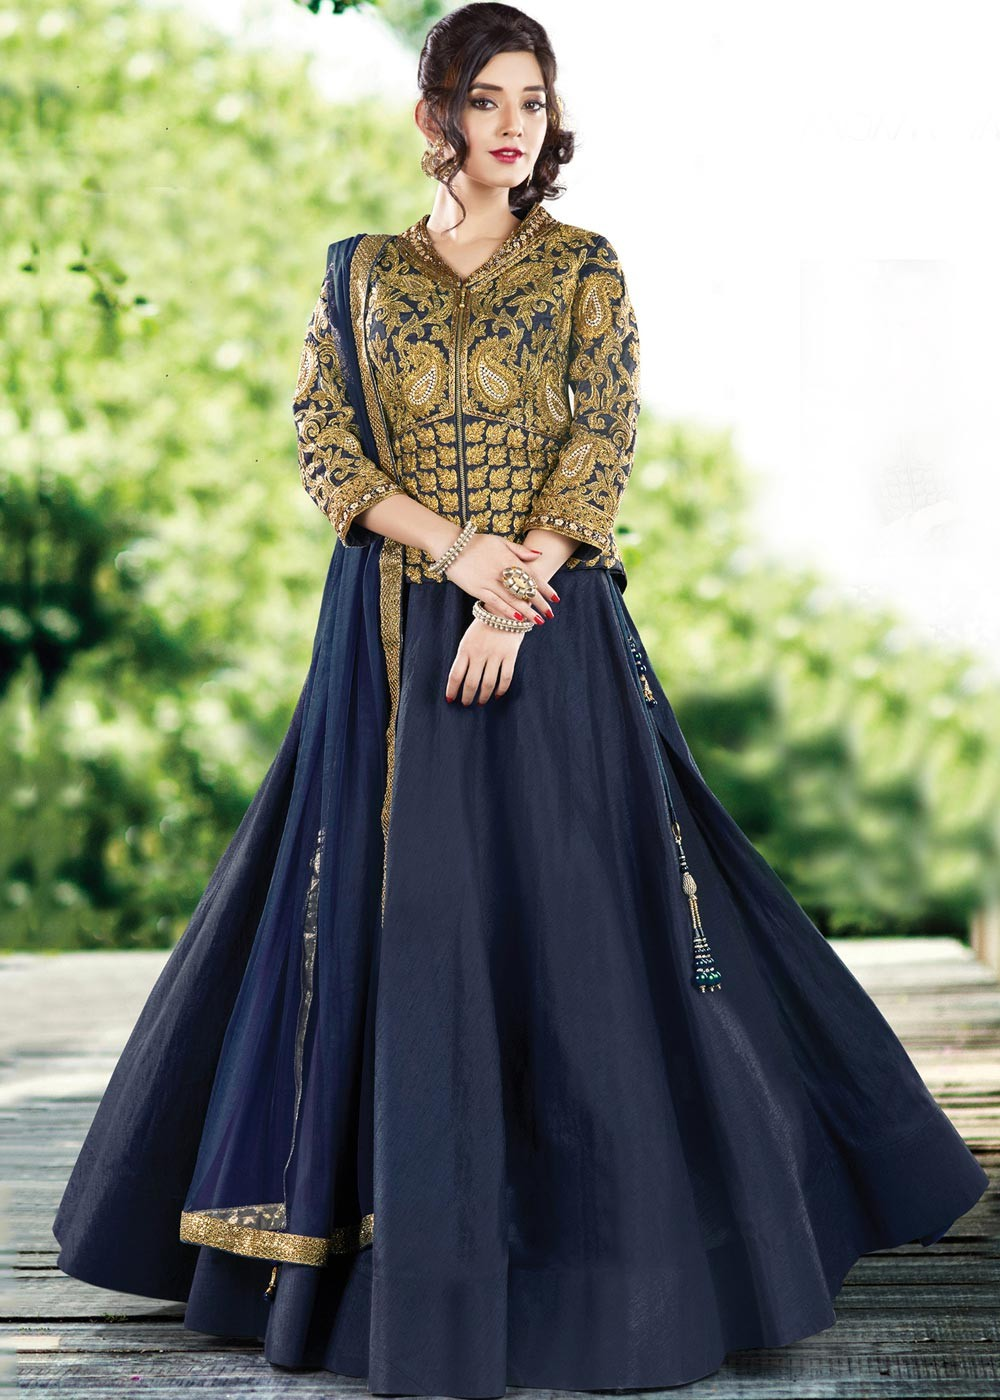 118925053fad0 Buy Blue Art Silk Indian Wedding Lehenga Choli Online with Crop Top    Dupatta ...